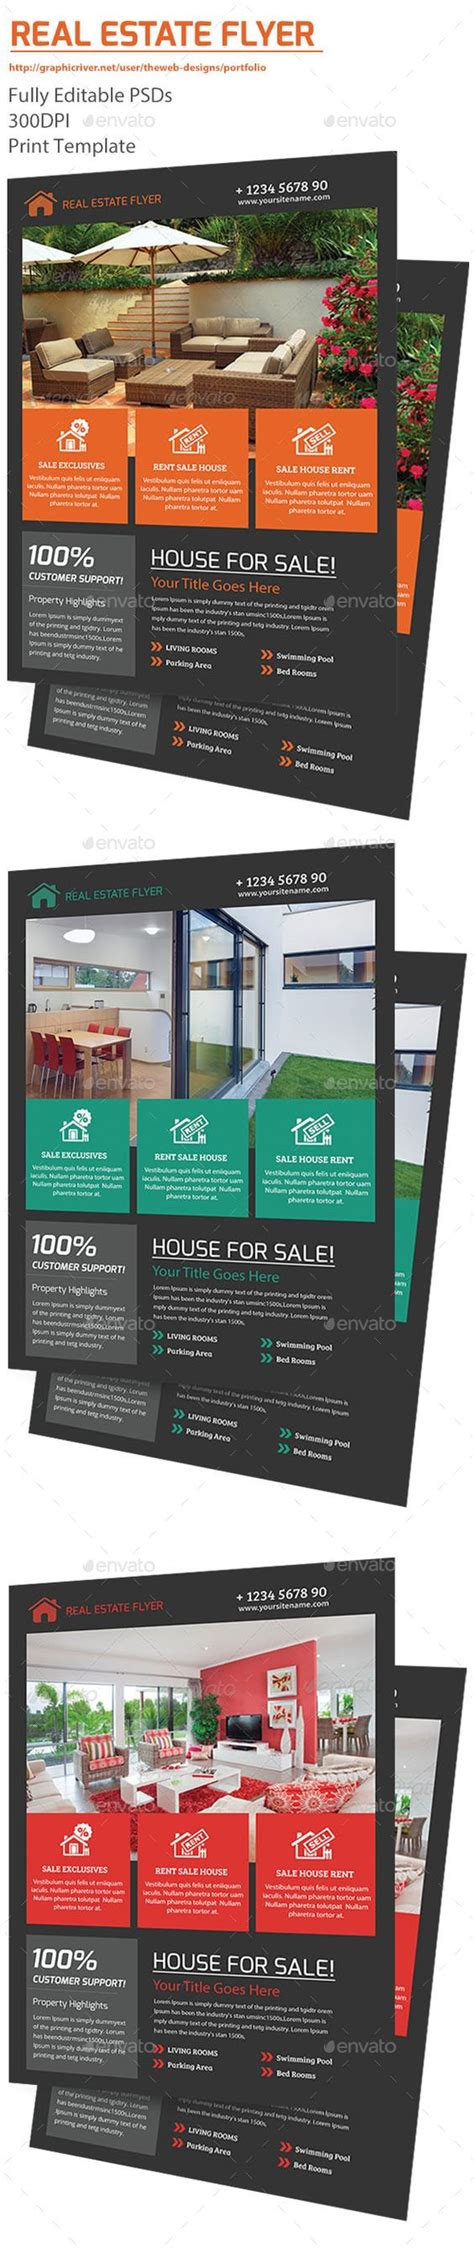 Real Estate Flyer Design Helpful Hints And Marketing Real Estate Marketing Caign Template